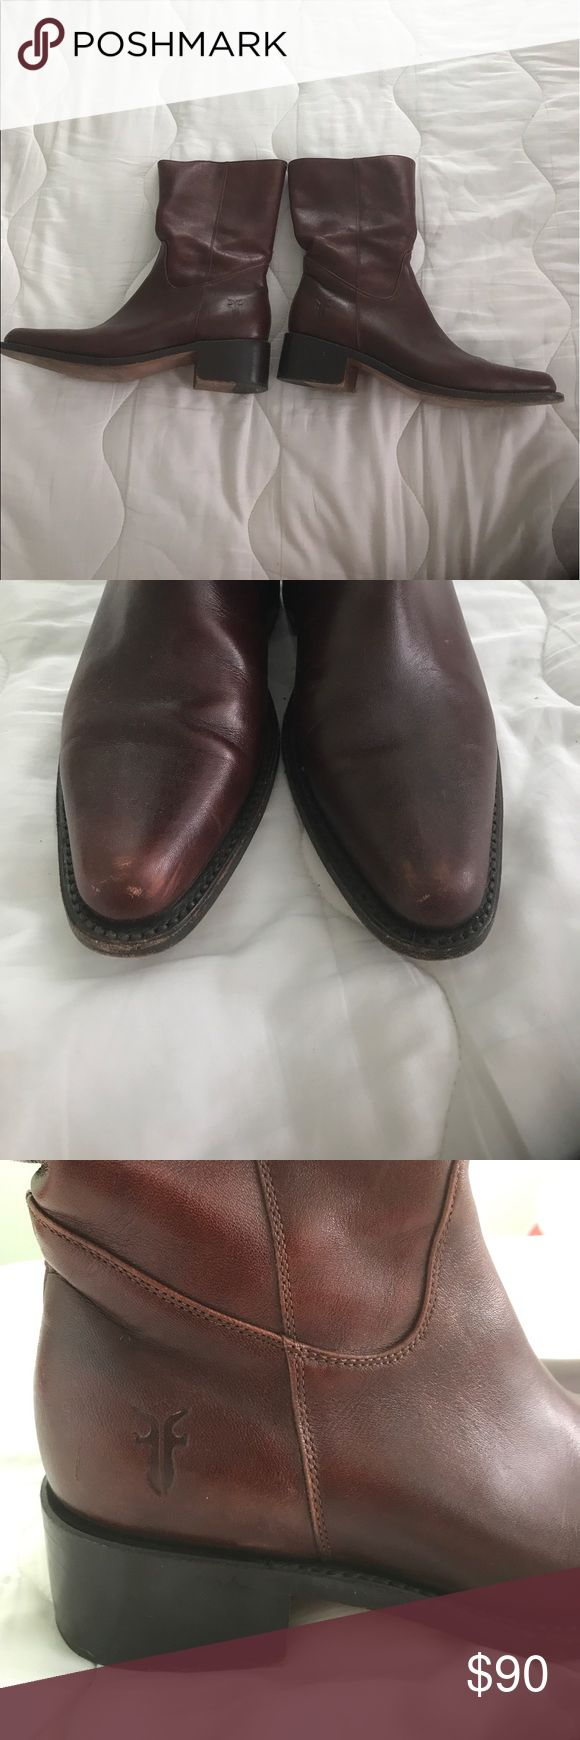 Frye Rush Women's cherry-brown mid-calf boots Frye Rush #77040 Women's cherry brown mid-calf boots, show some wear on the toe ( see picture), otherwise in good condition. Please feel free at ask any questions or for more pictures Frye Shoes Ankle Boots & Booties